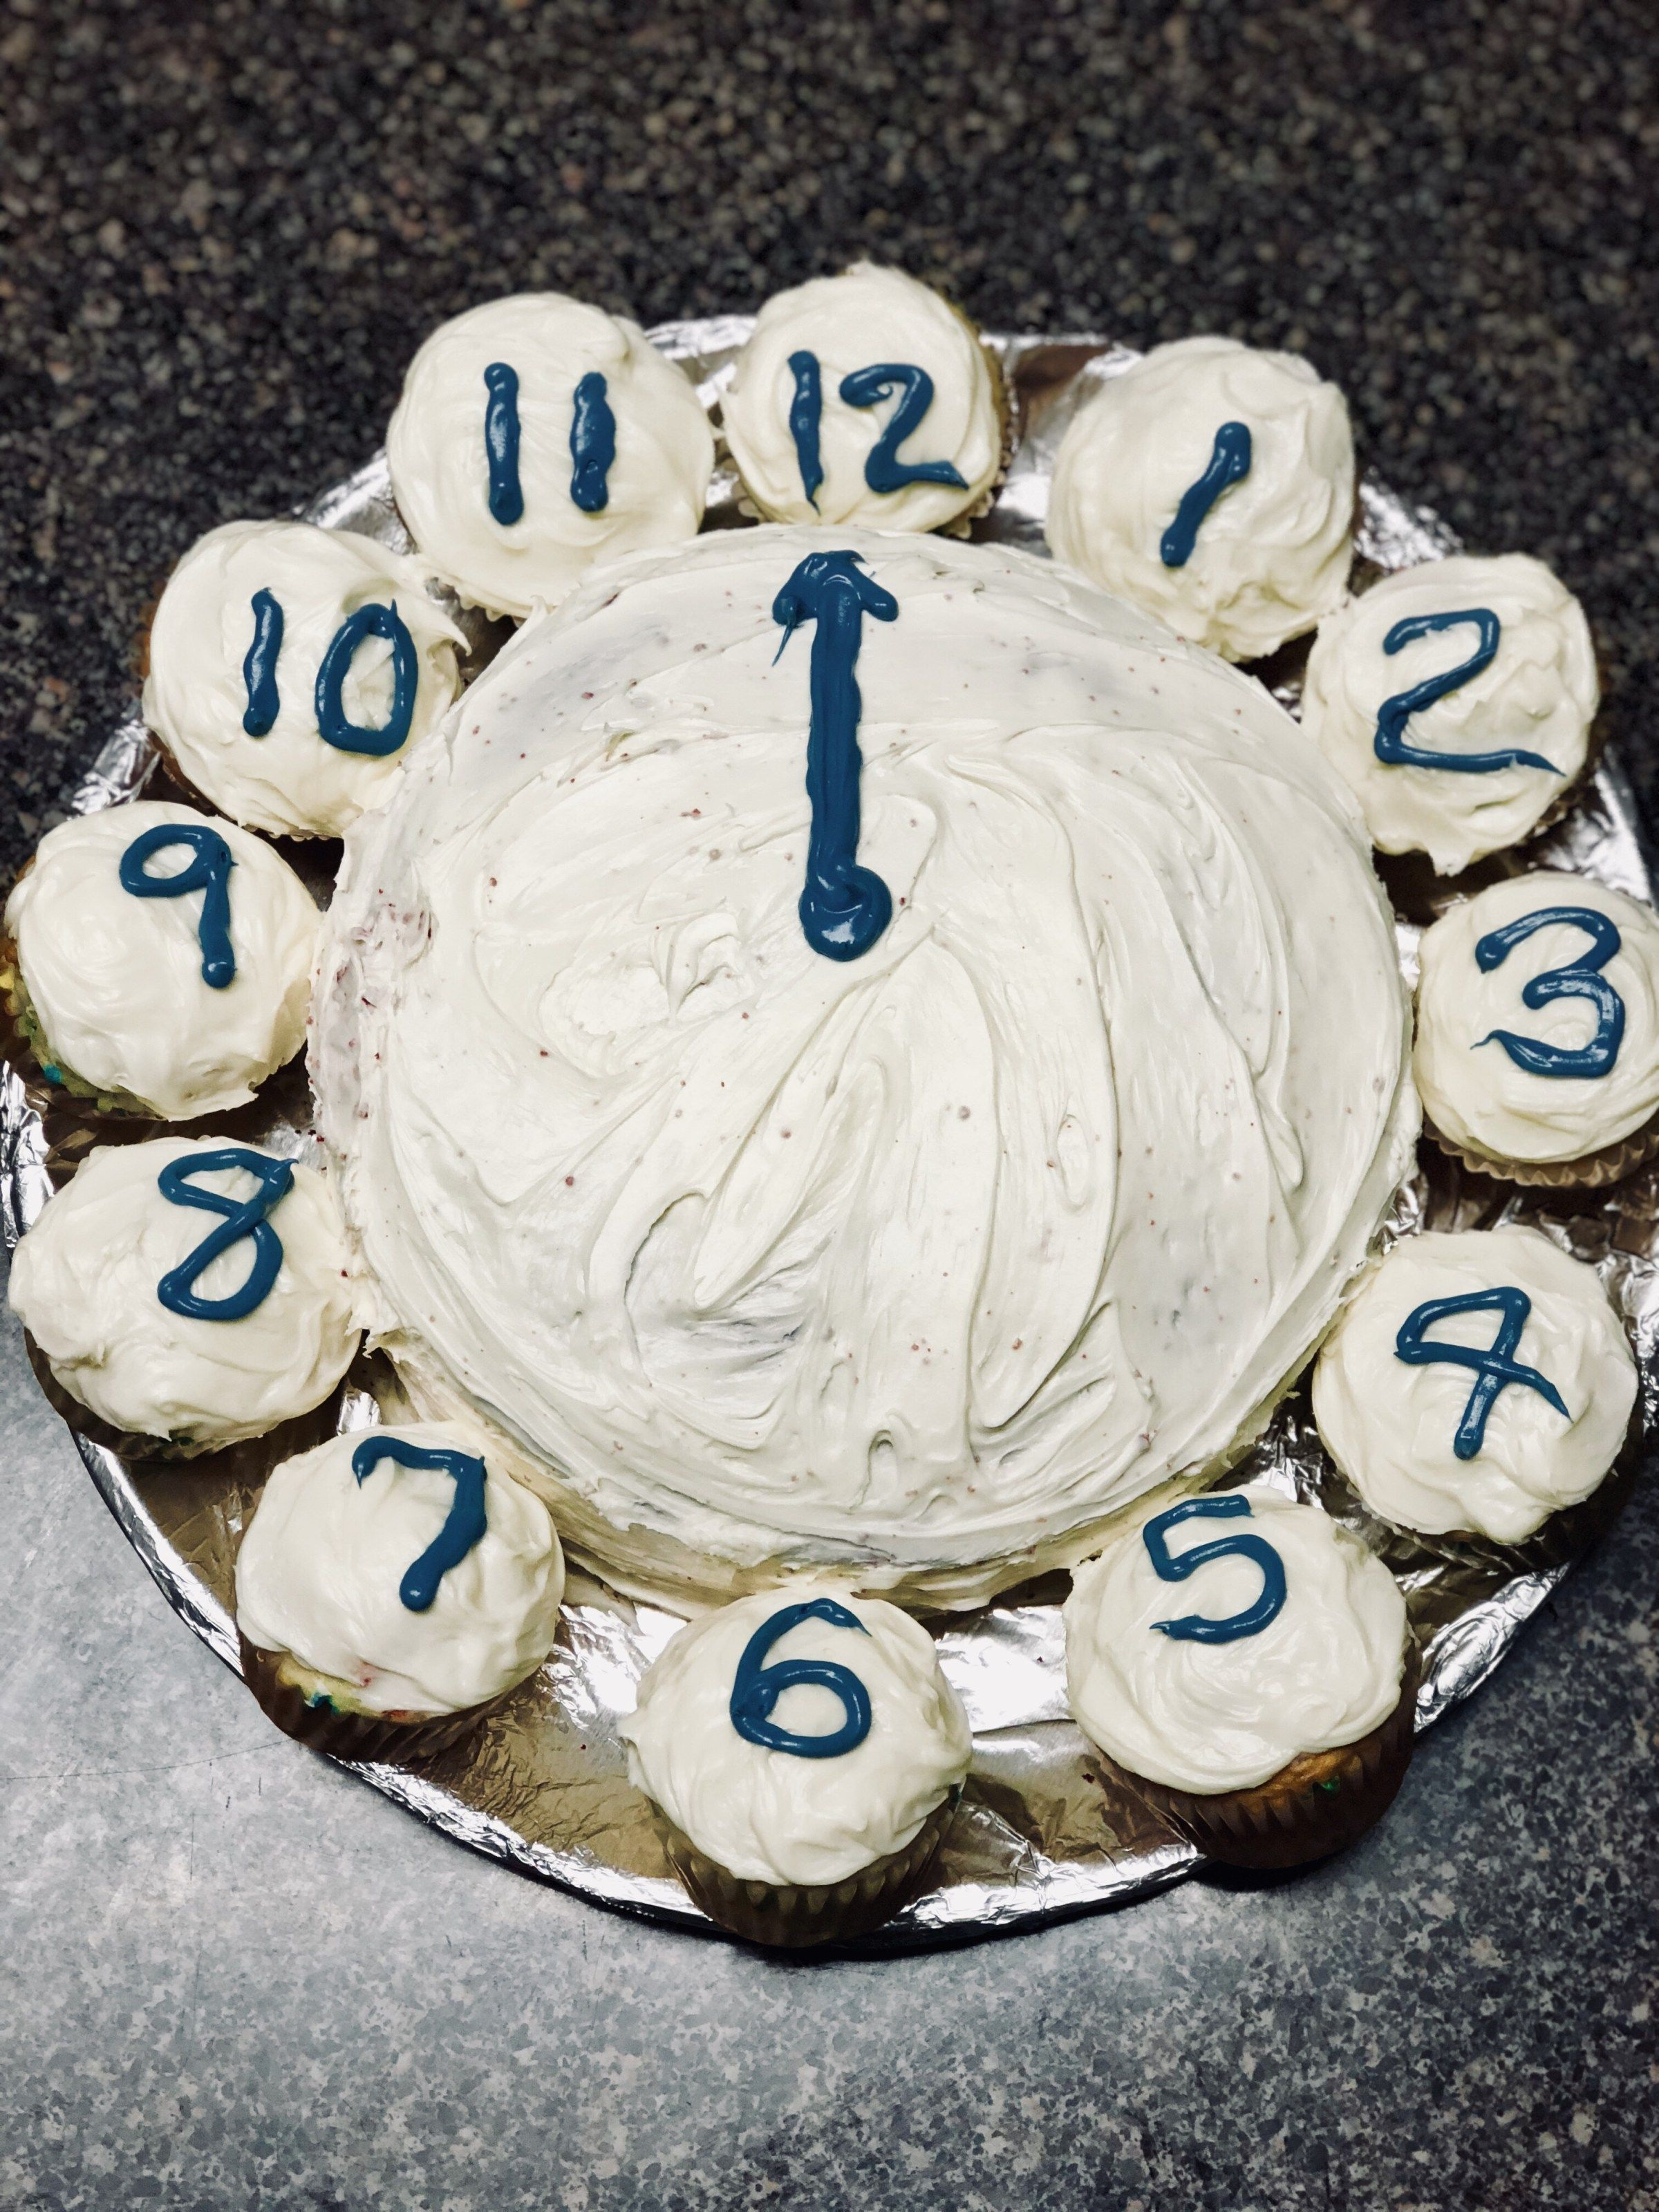 New years cupcake clock cake easy decorating fun cupcakes cakes also rh co pinterest